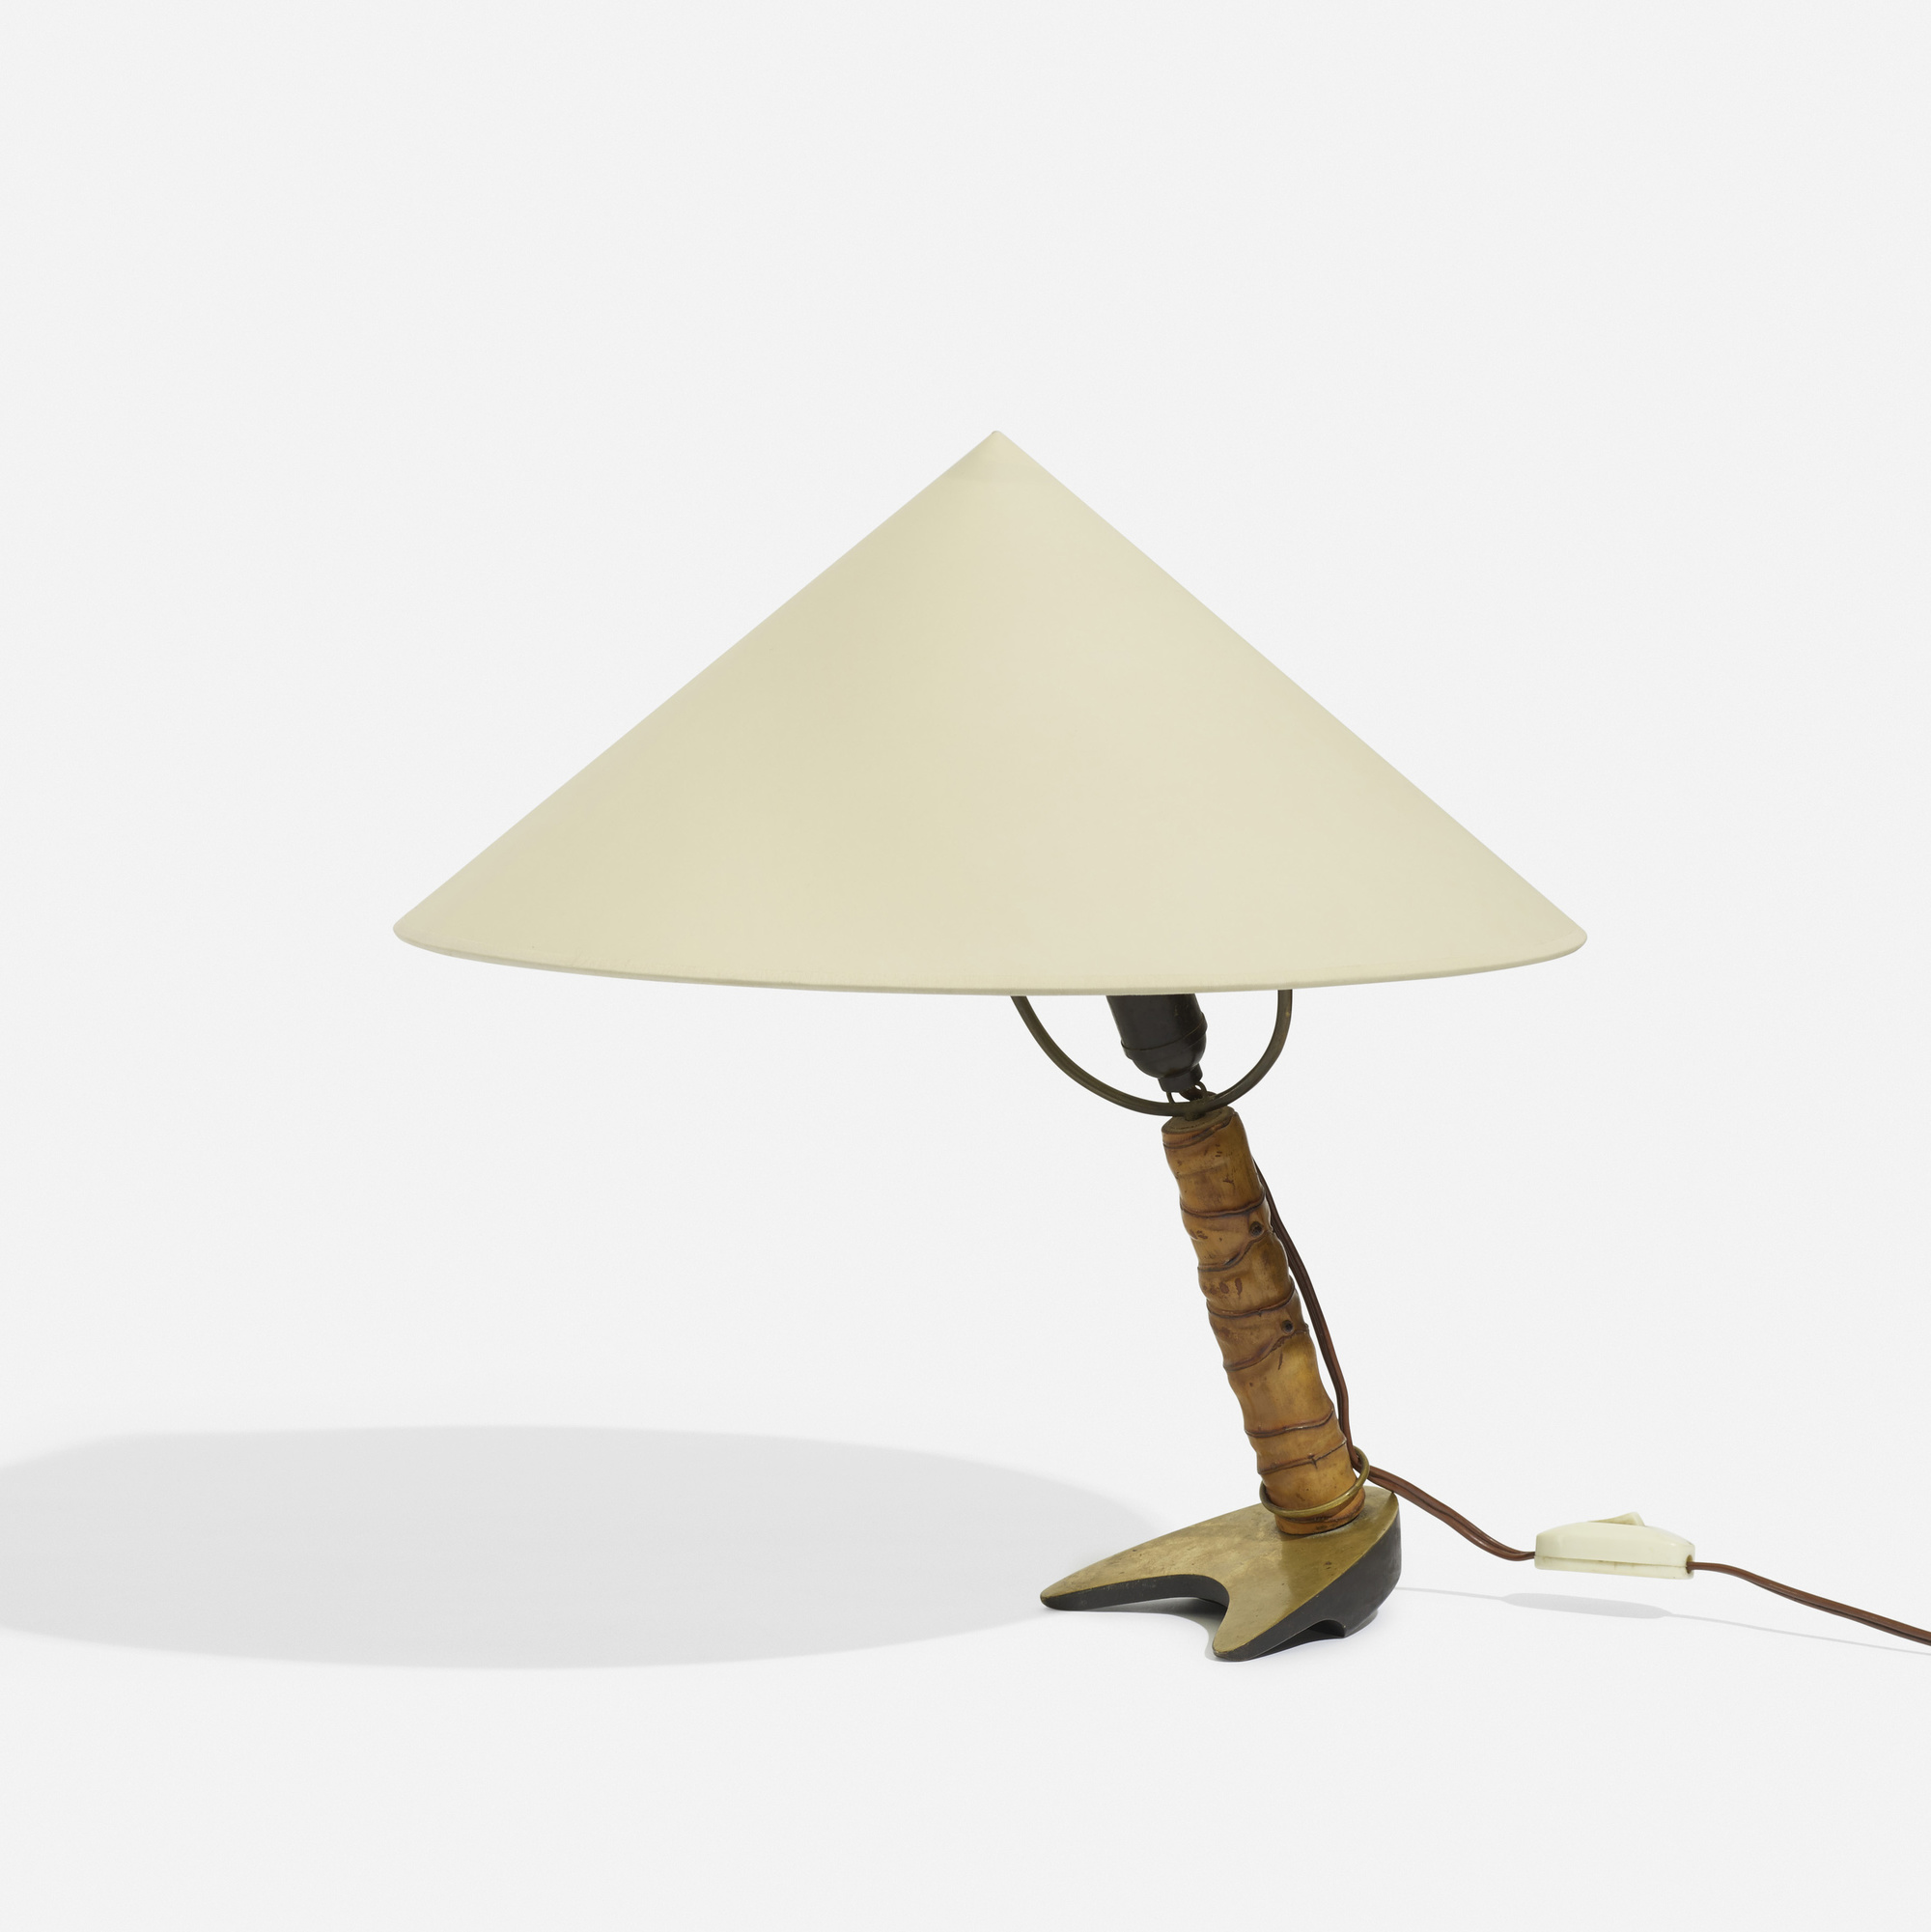 111: Carl Auböck II / table lamp (1 of 3)